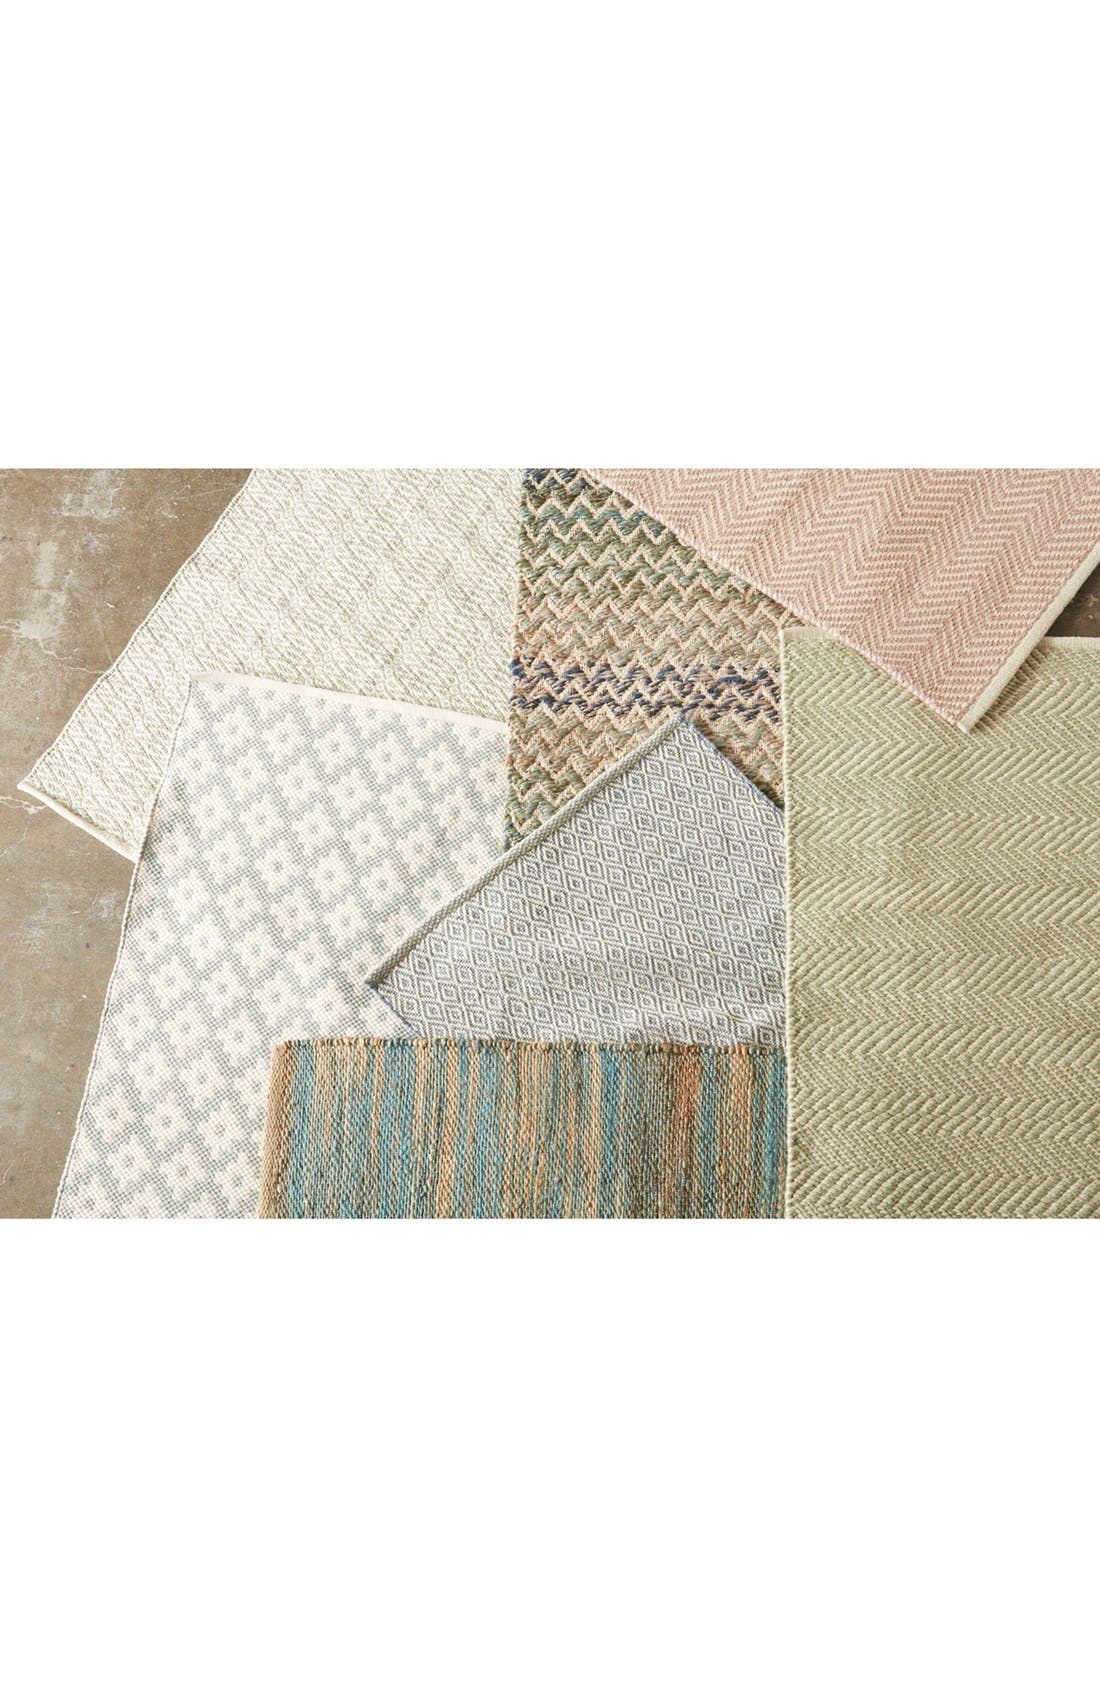 ,                             'Samode' Indoor/Outdoor Rug,                             Alternate thumbnail 2, color,                             GRAPHITE/ IVORY